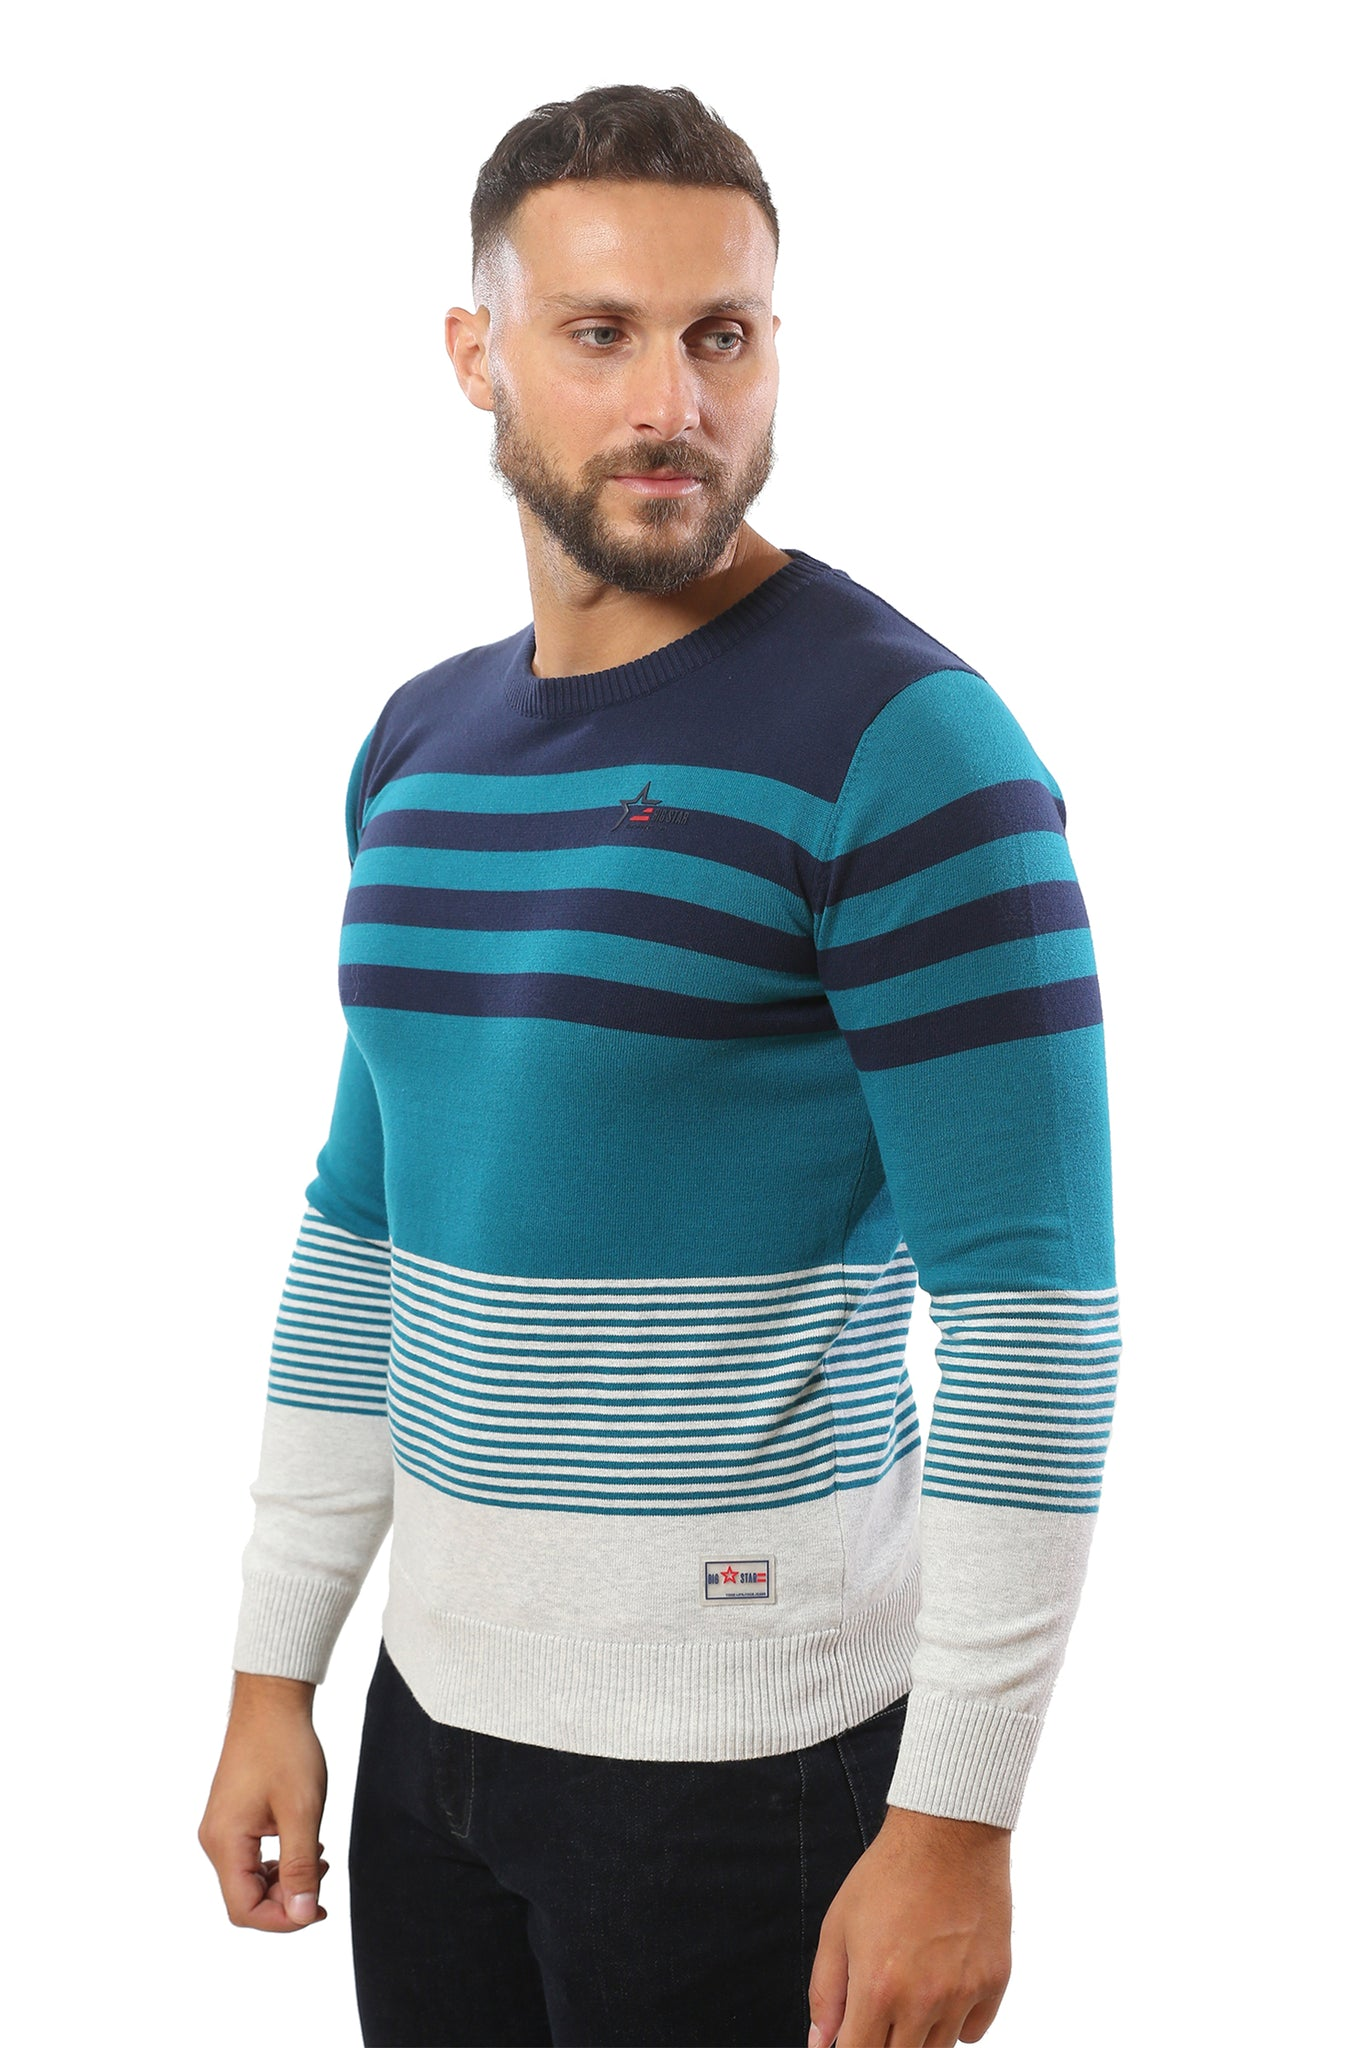 Sweater with Stripes | Blue Sapphire with Navy and Heather Grey